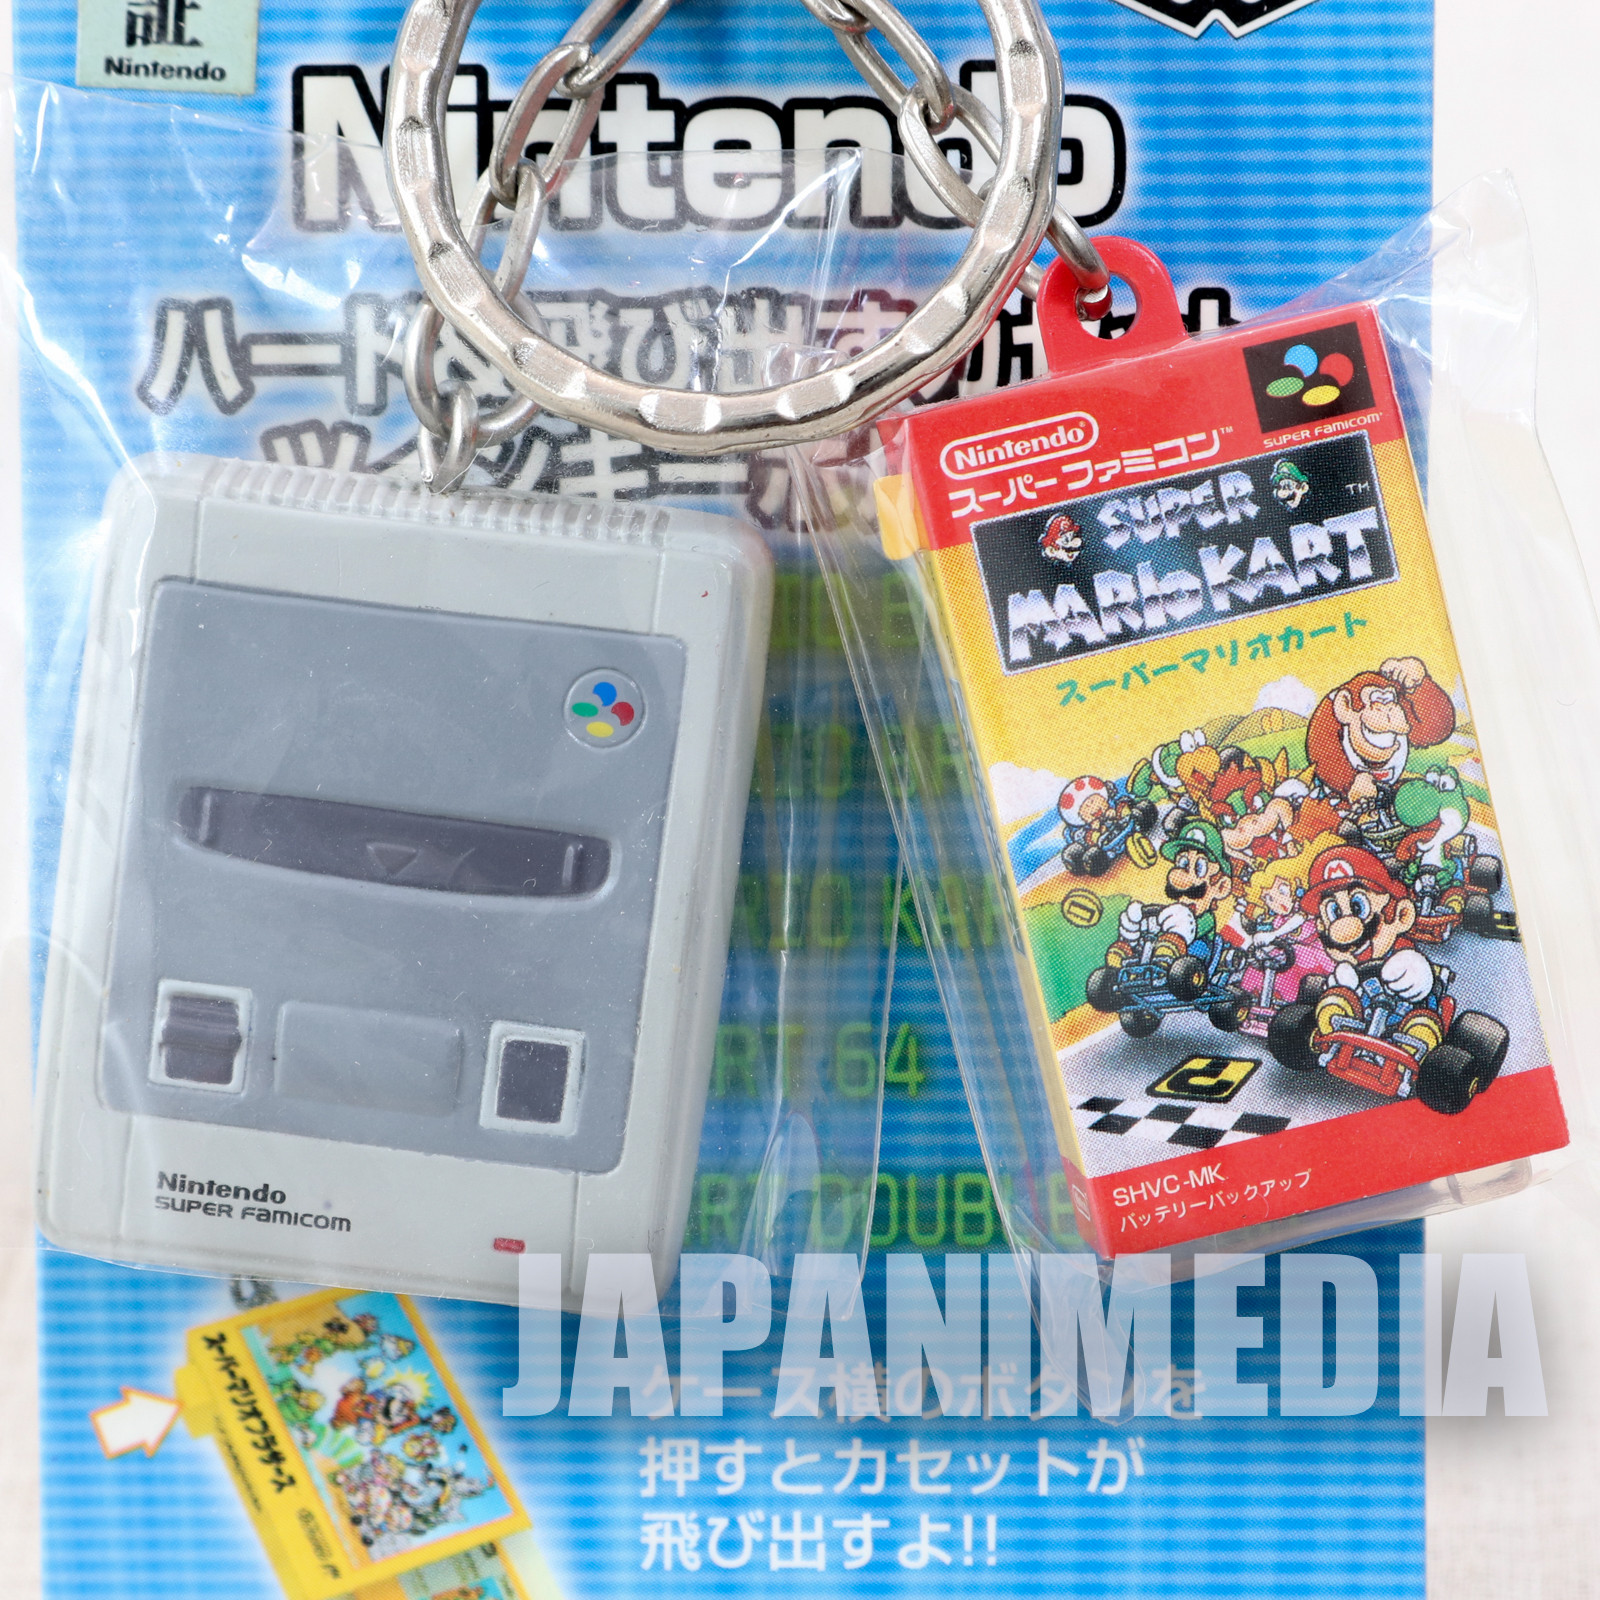 Nintendo Miniature Figure Key Chain Super Famicom & Super Mario Kart SNES JAPAN